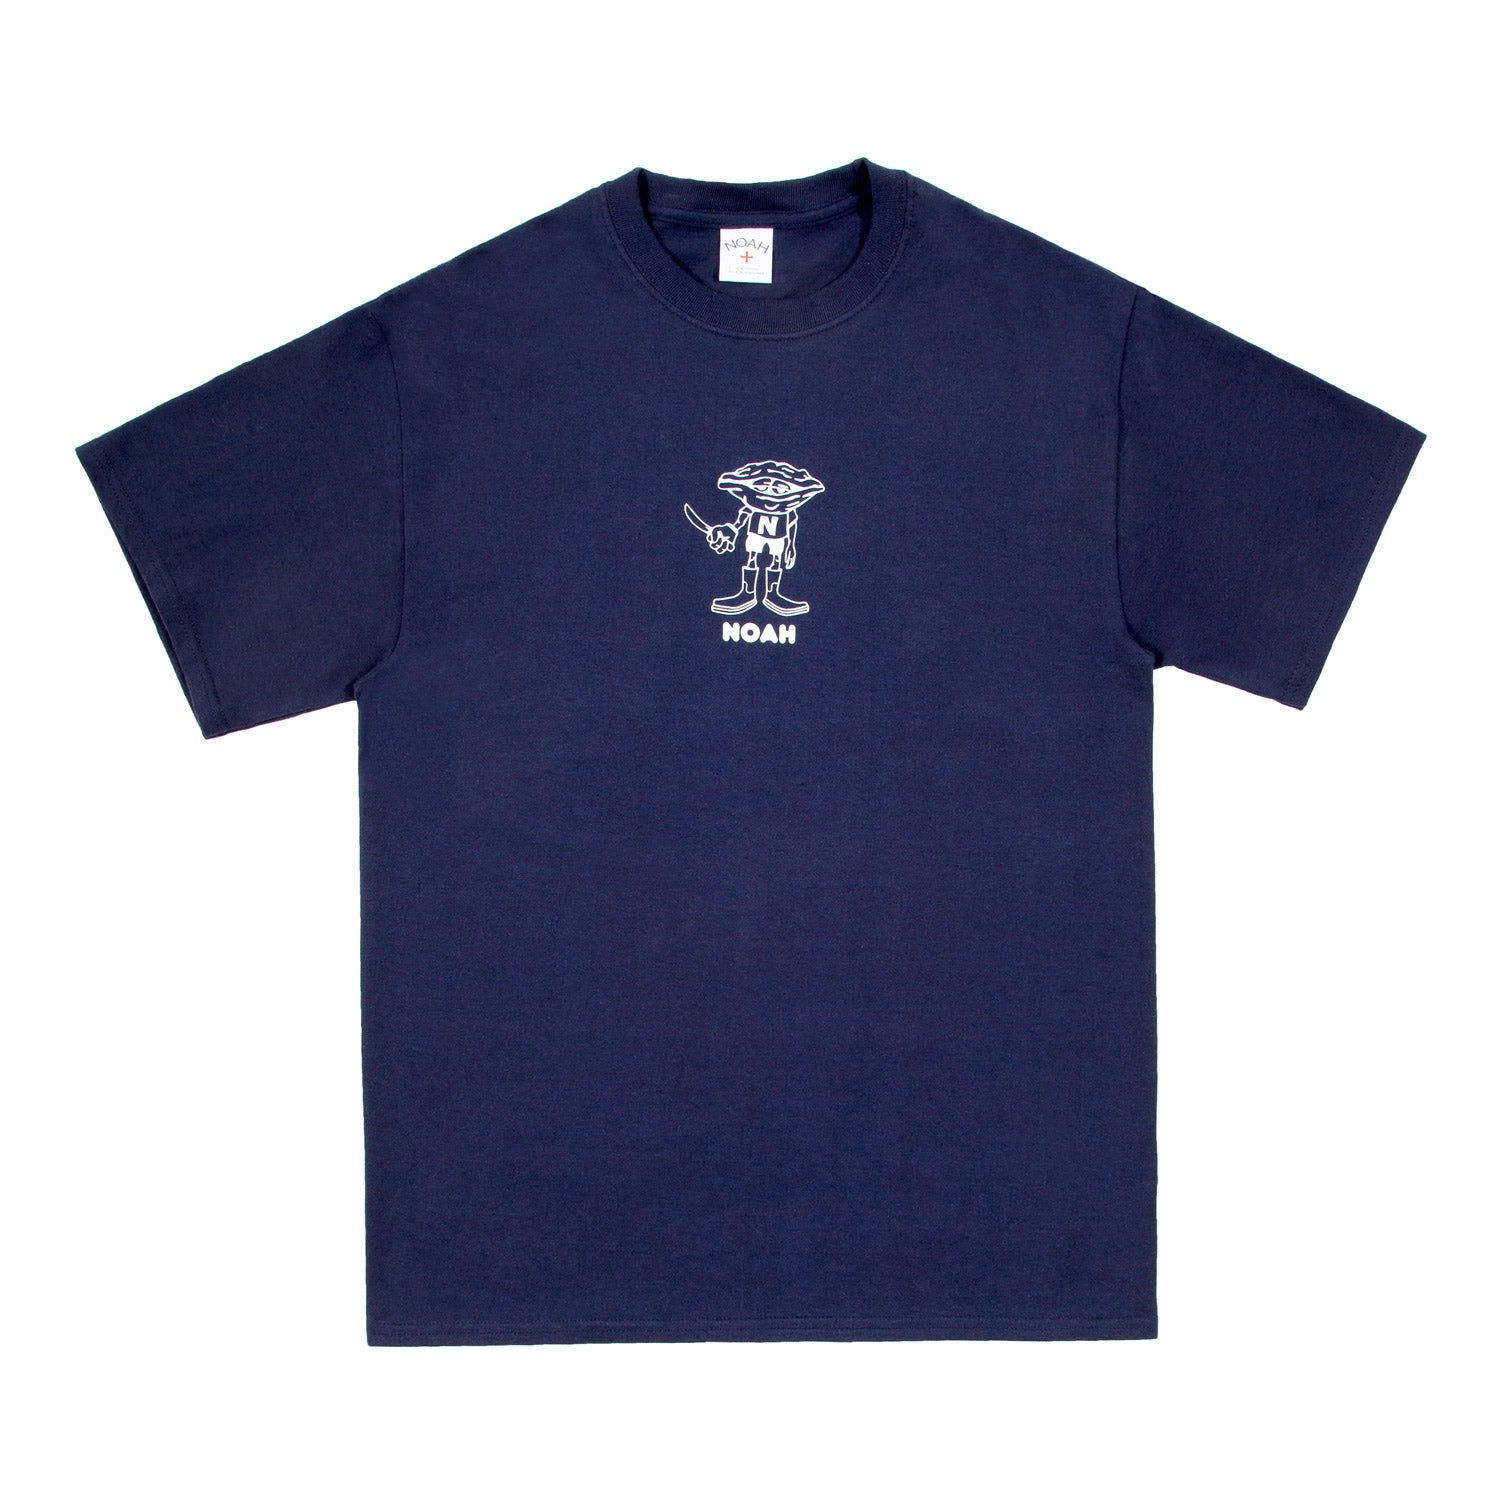 color:deep navy